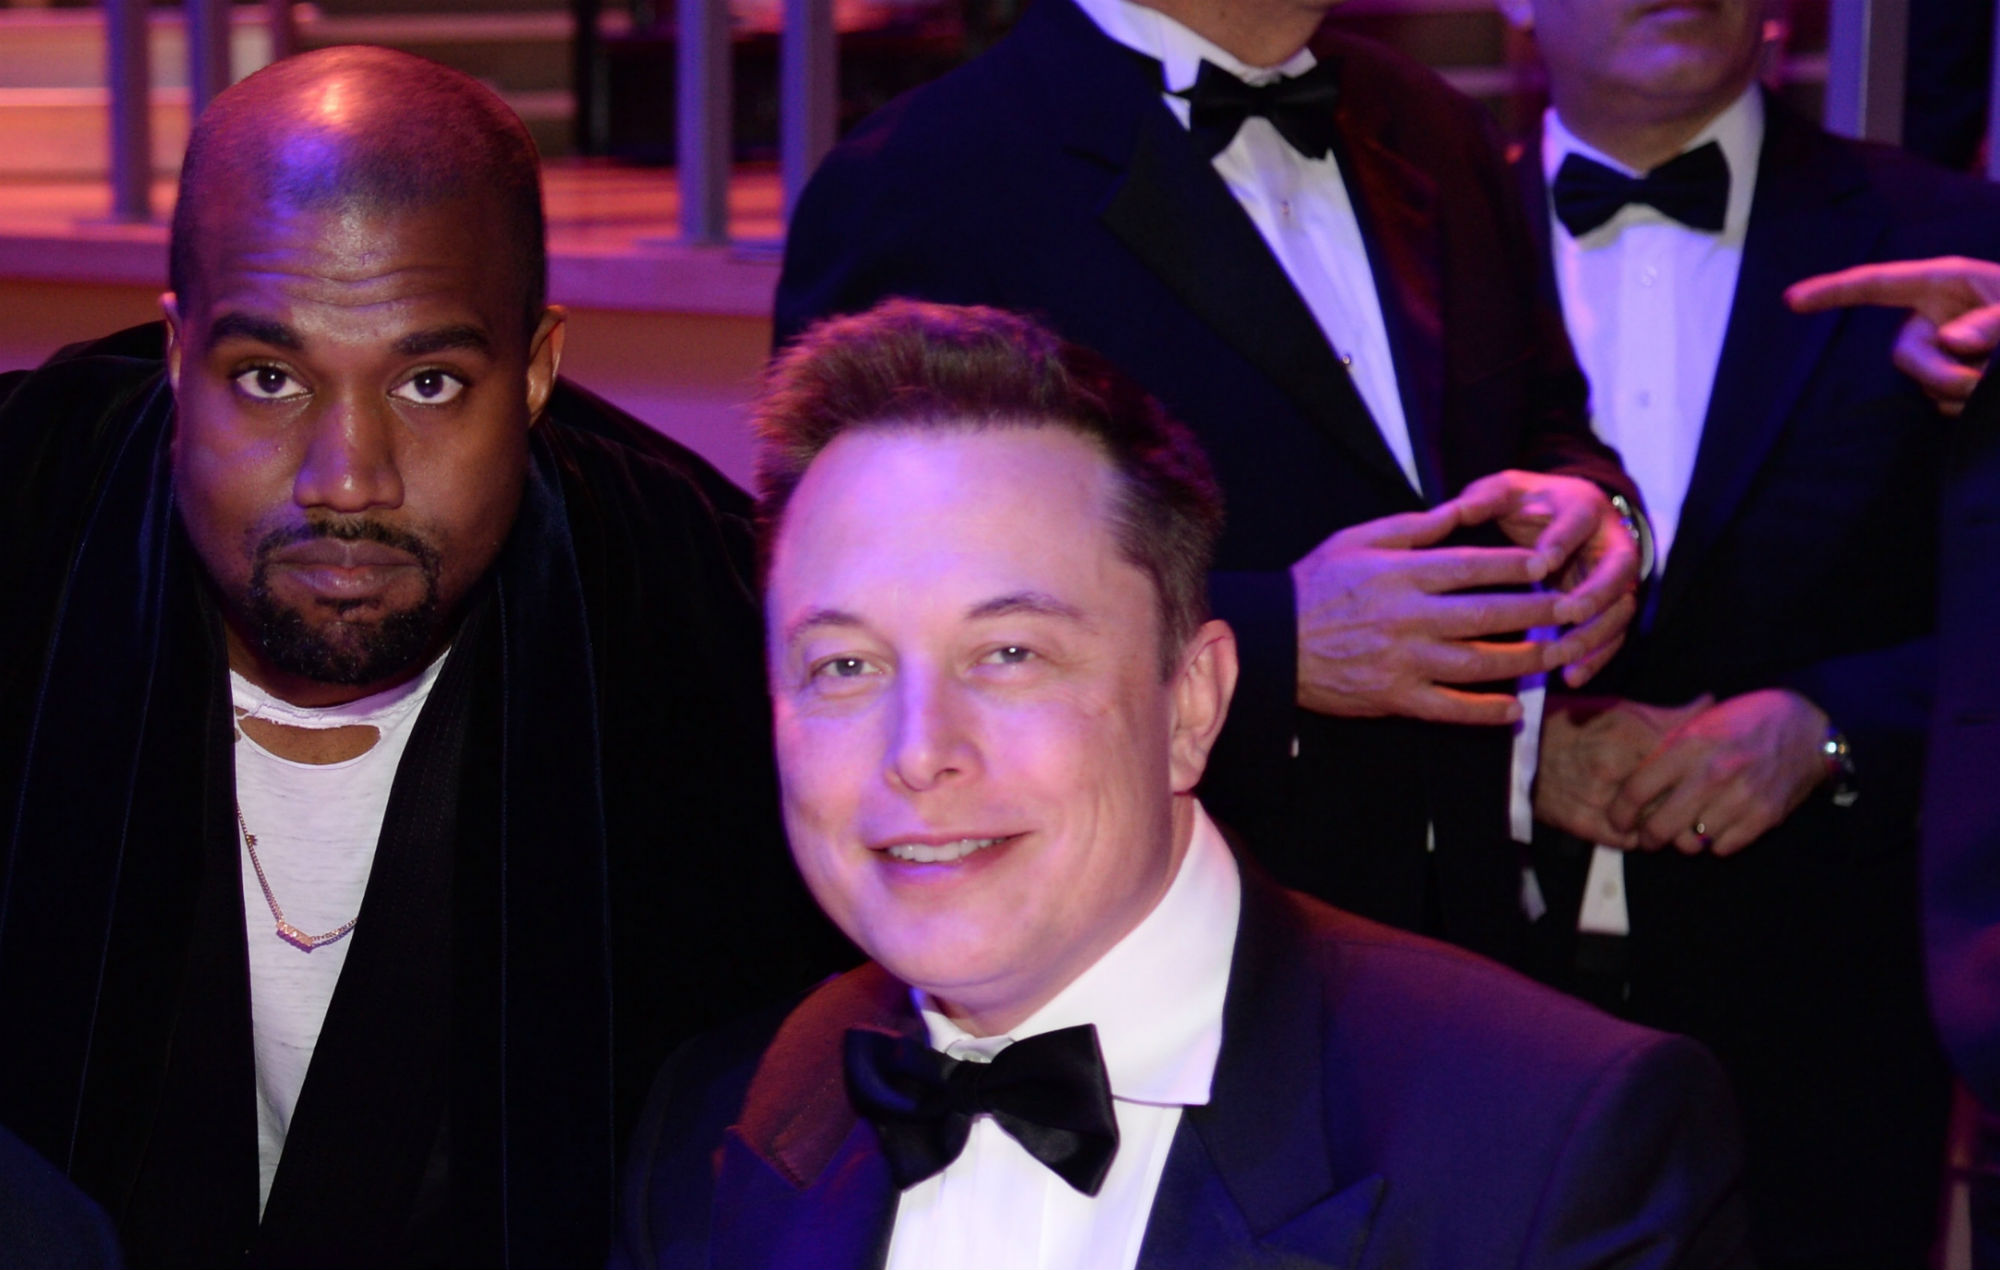 Elon Musk is reconsidering his support for Kanye West's presidential run